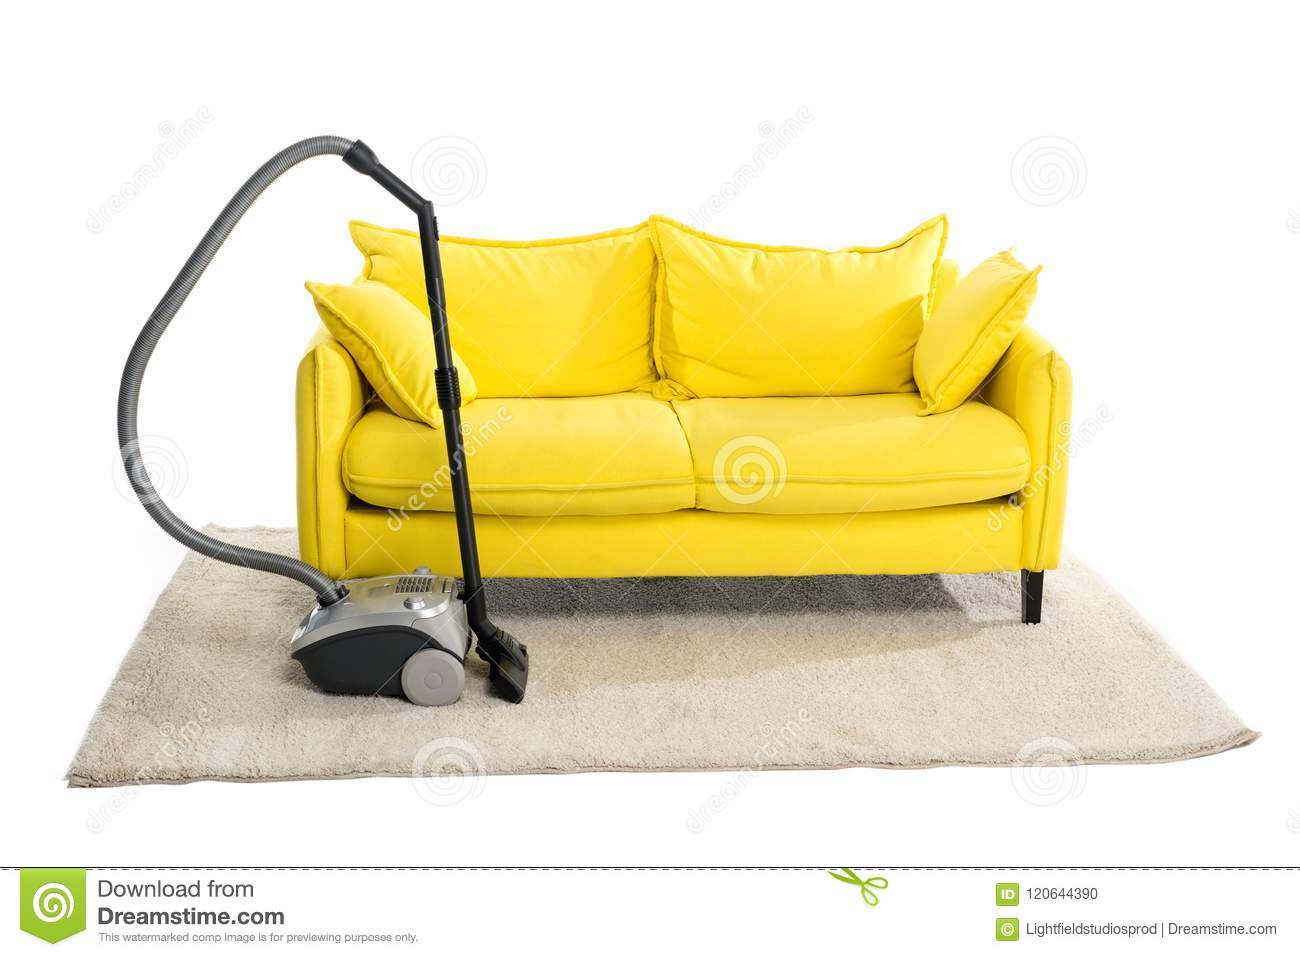 Bright Yellow Sofa And Vacuum Cleaner On Carpet Stock Photo Image